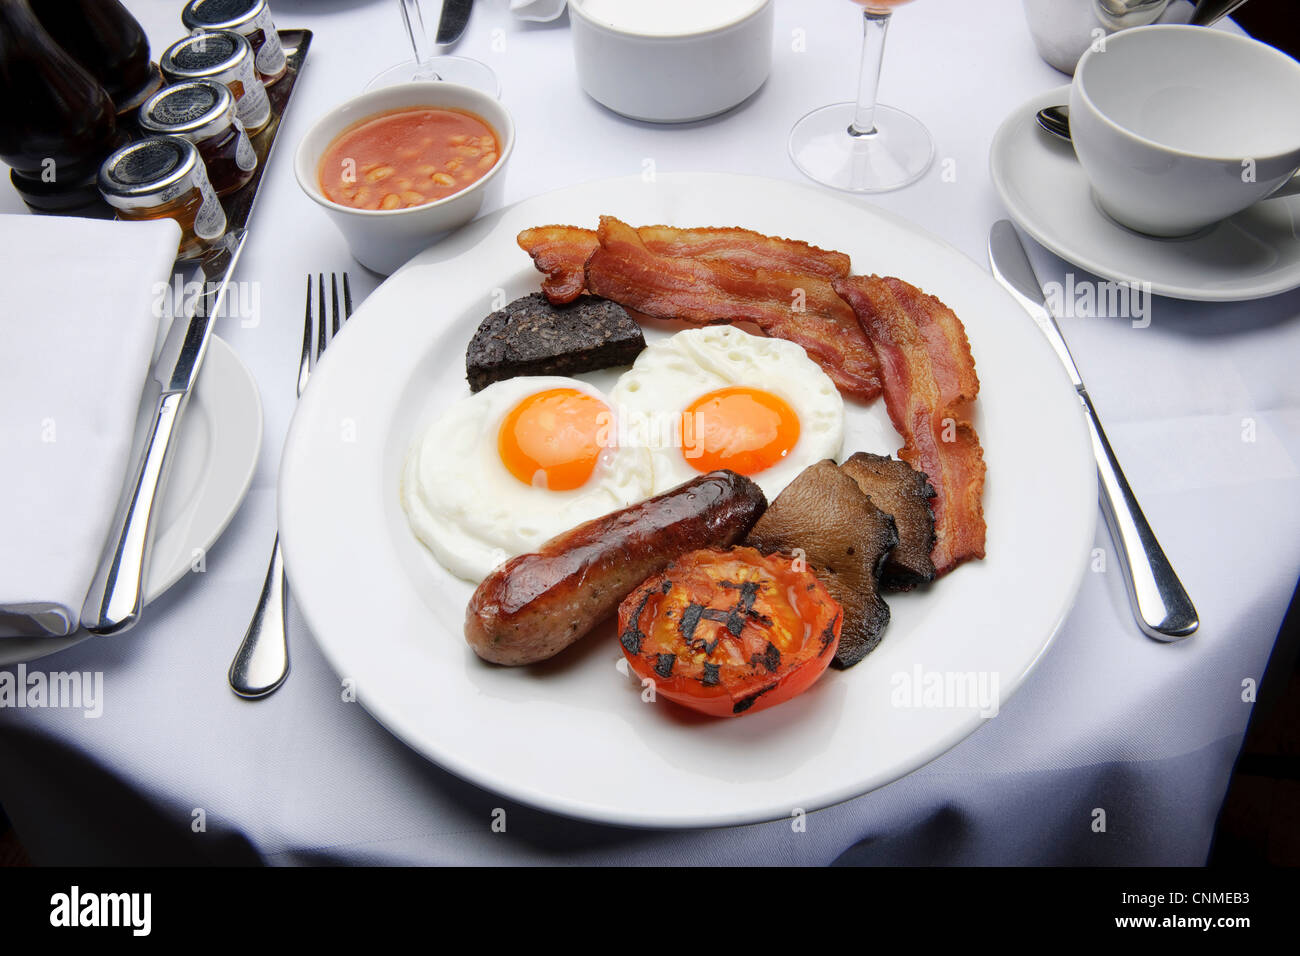 full english breakfast bacon and eggs fry-up in restaurant healthy unhealthy Stock Photo